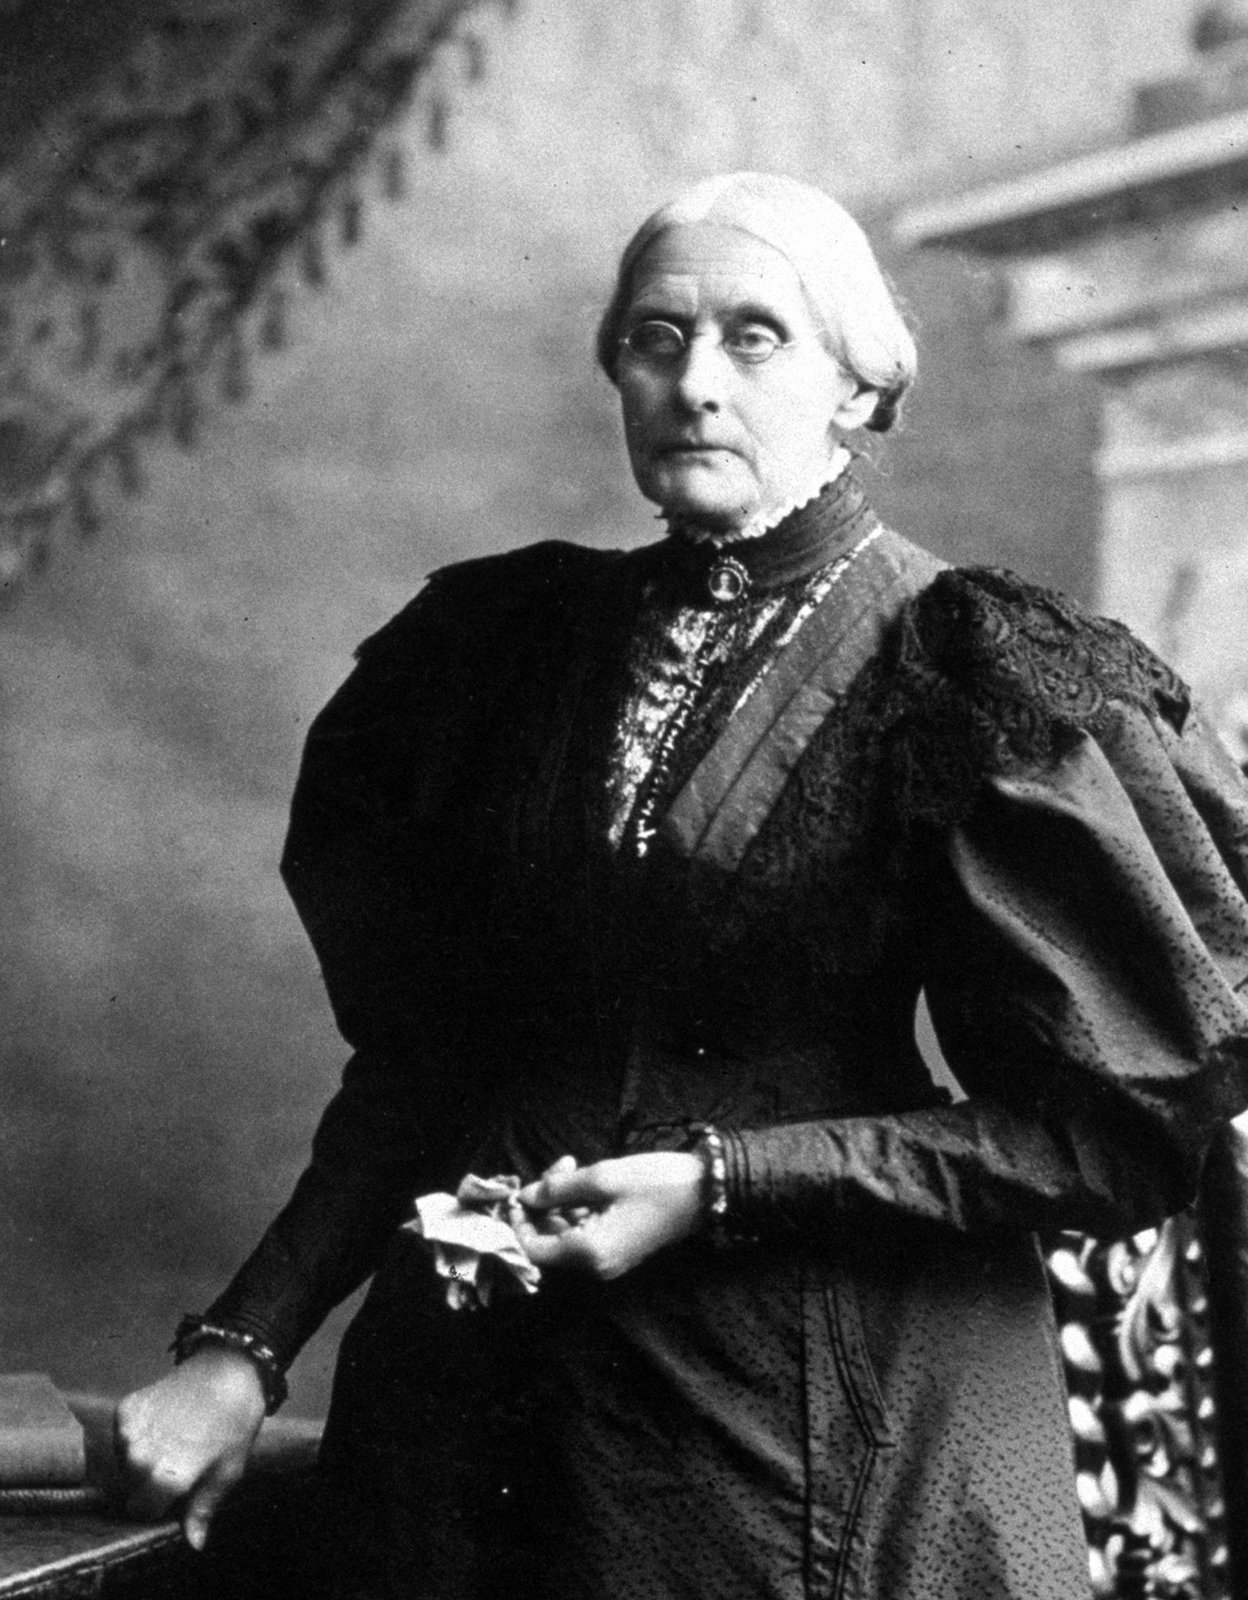 Susan B. Anthony | Biography, Suffrage, & Facts | Britannica